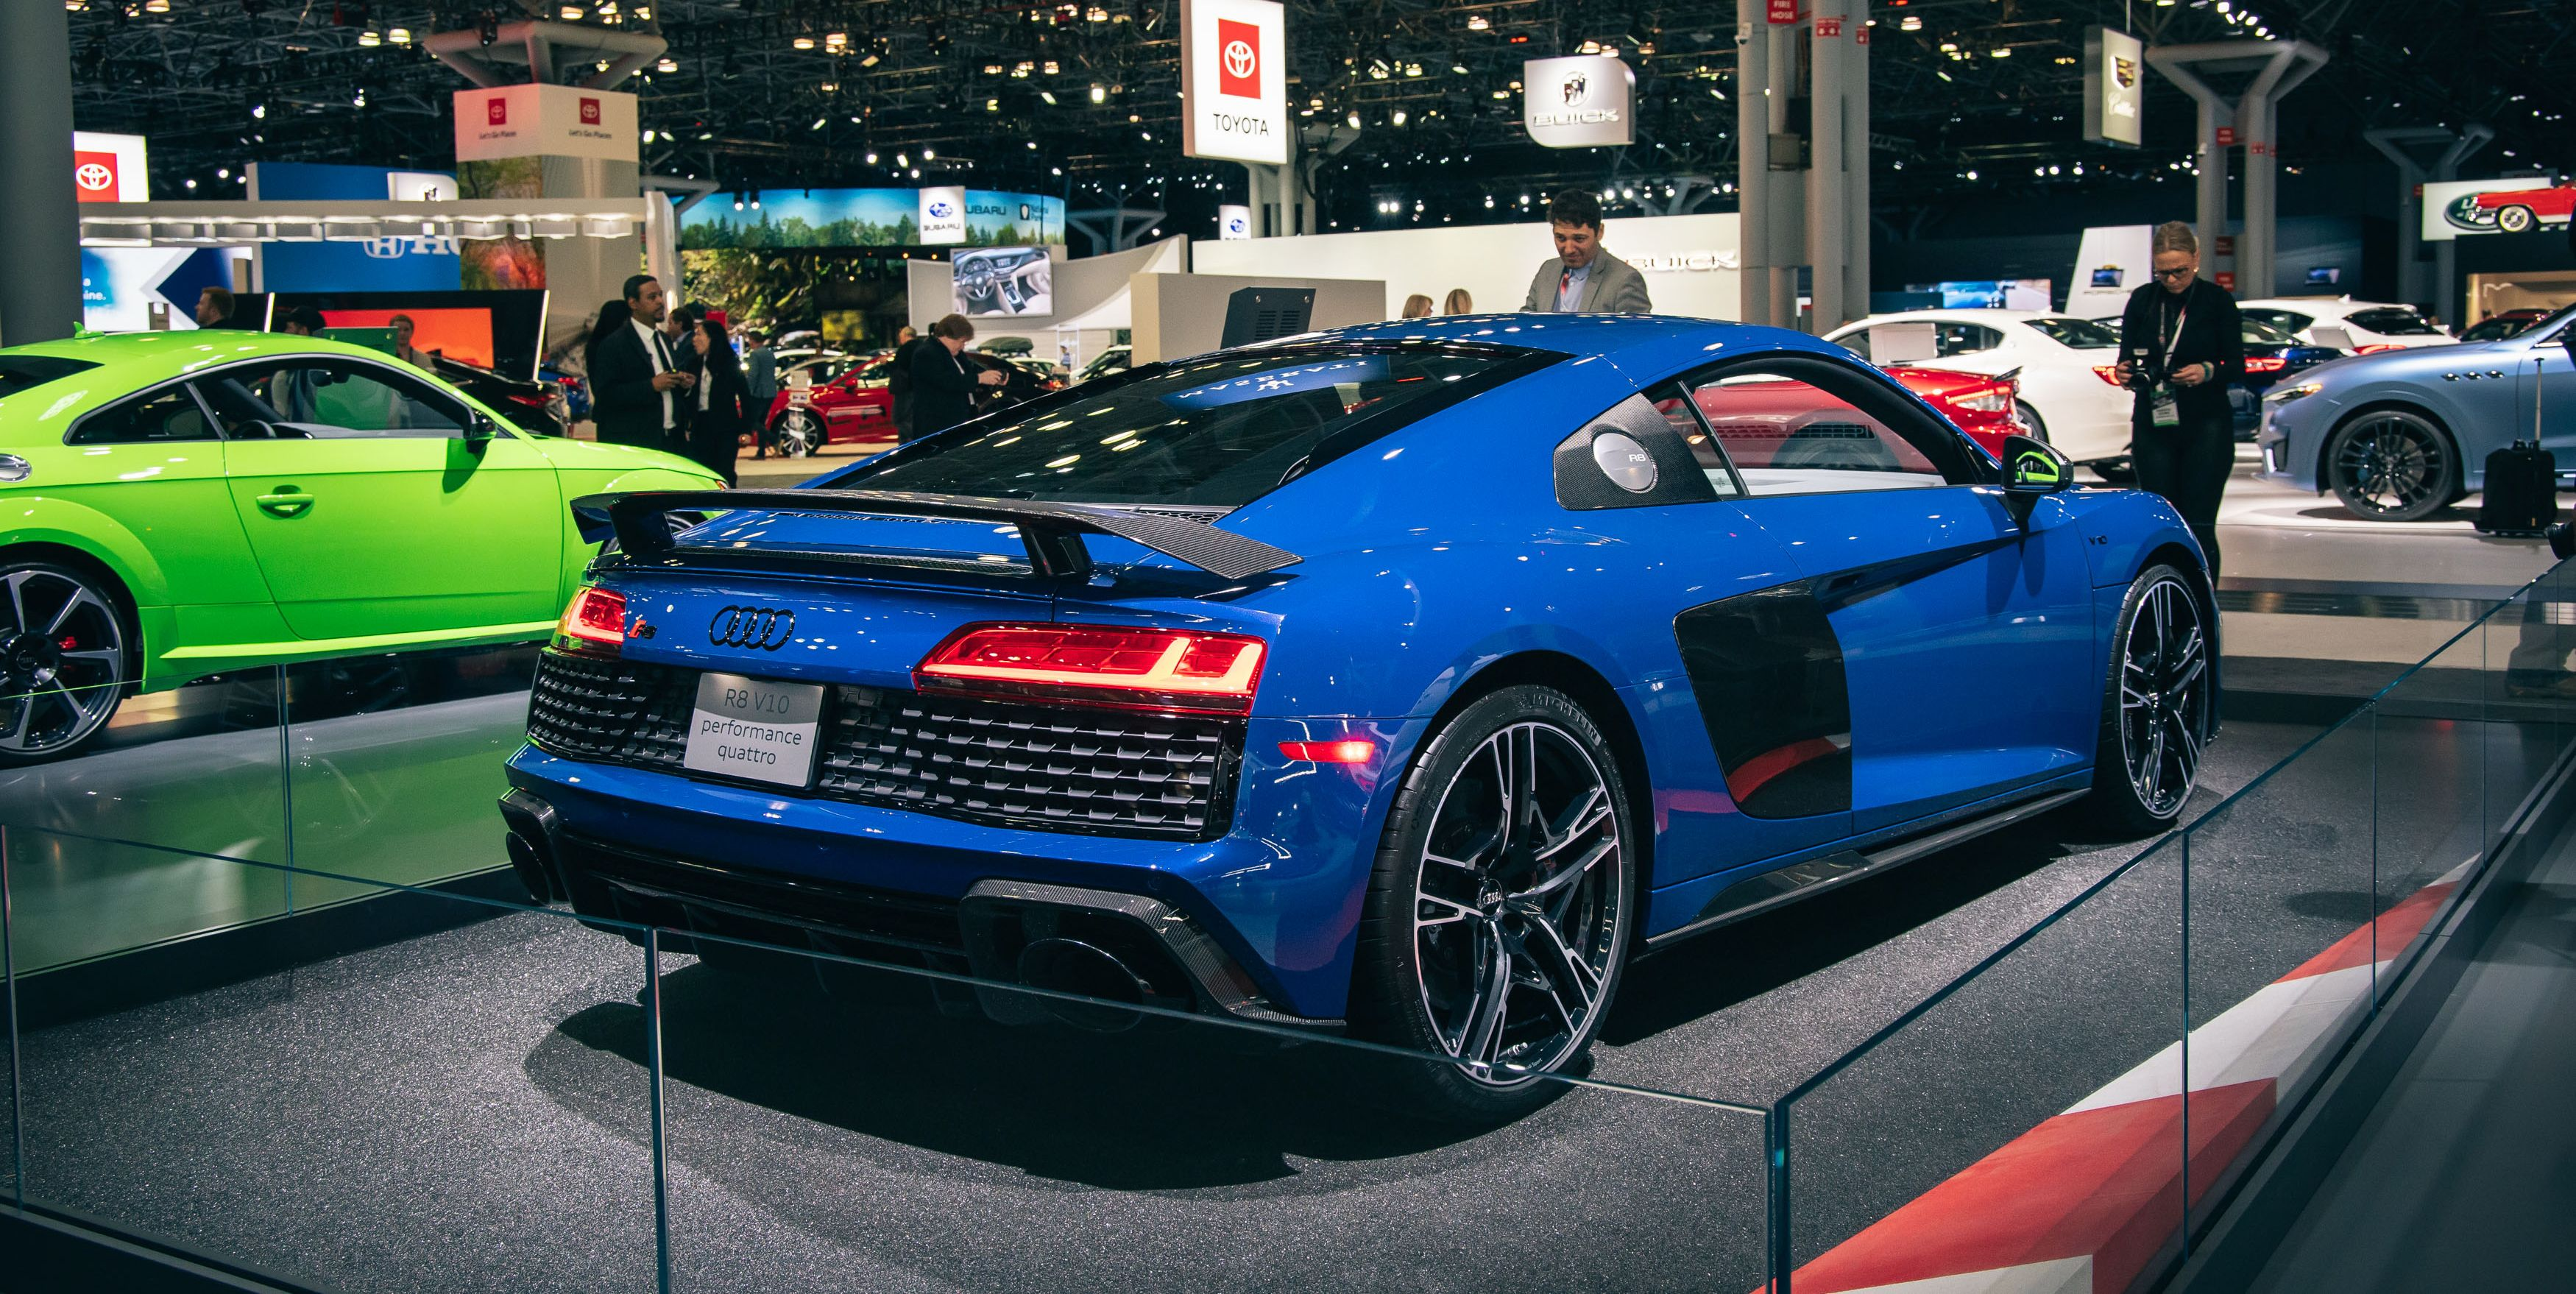 2020 Audi R8: Exterior Tweaks and Extra Power for a Nominal Price Jump